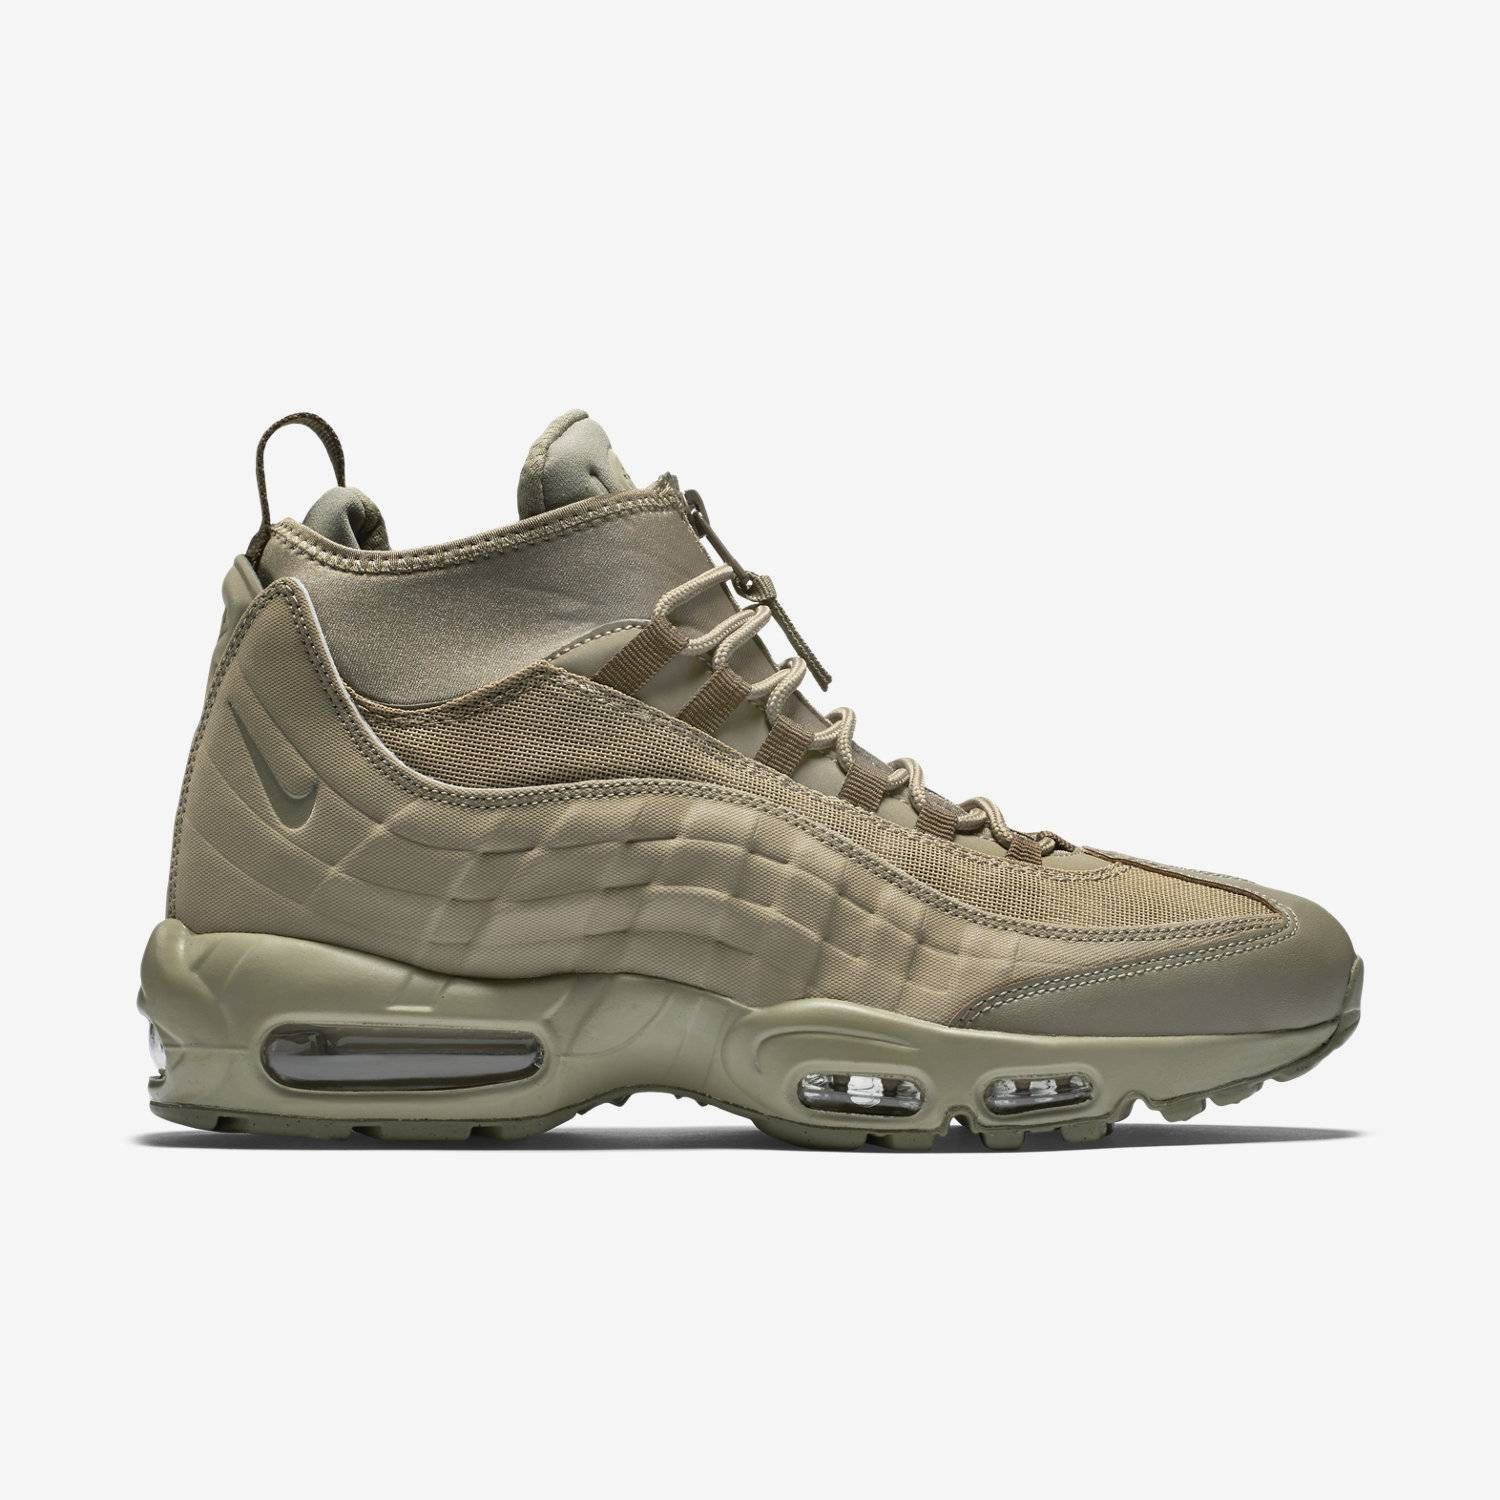 best website def9f 9e077 ... promo code for air max 95 sneakerboot nike 806809 300 goat 6c7d1 71368